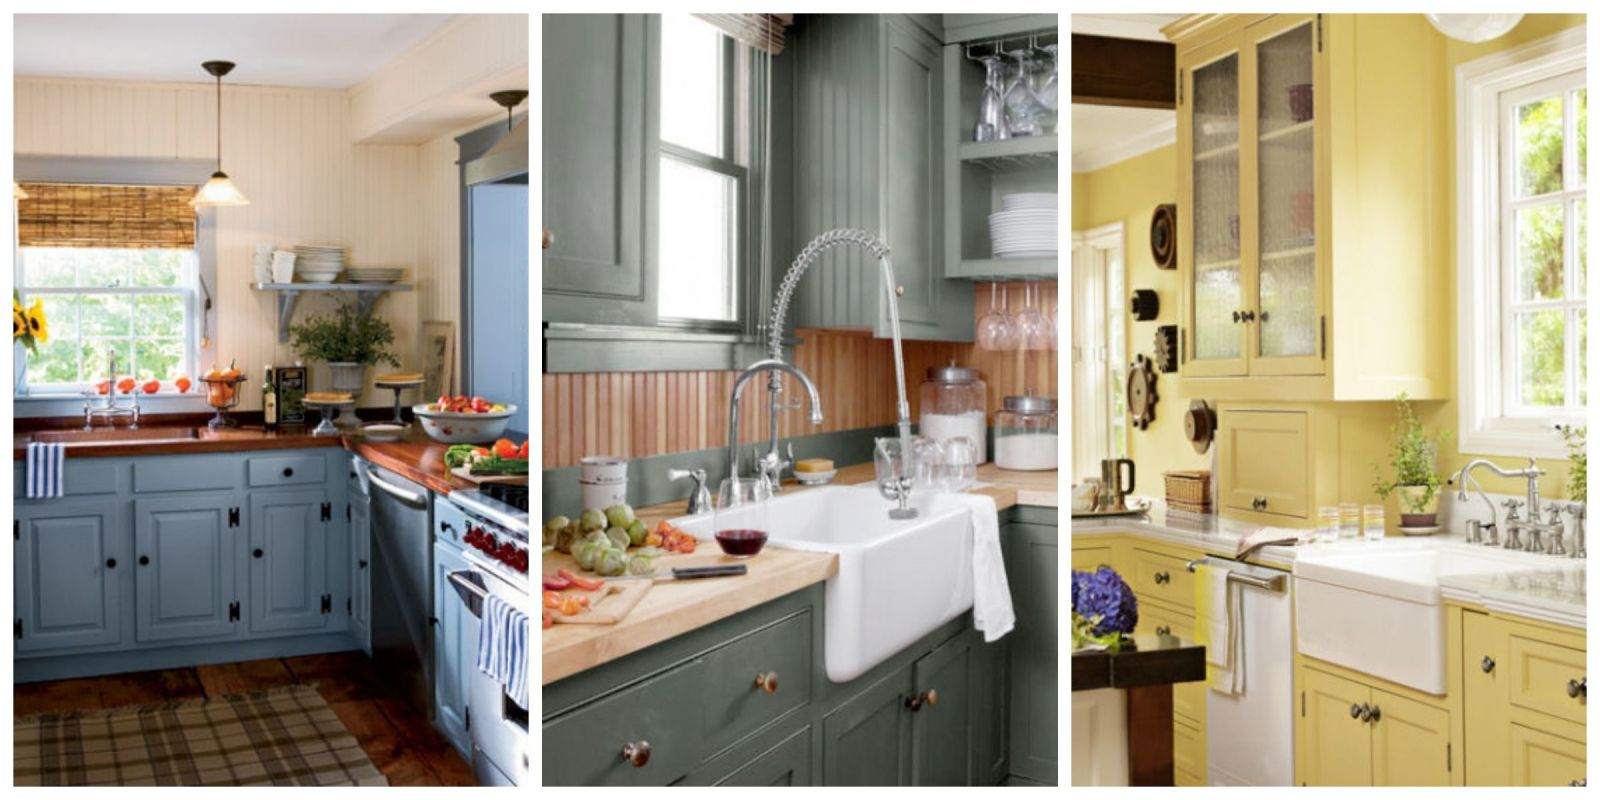 Color Kitchen 15 Best Kitchen Color Ideas Paint And Color Schemes For Kitchens